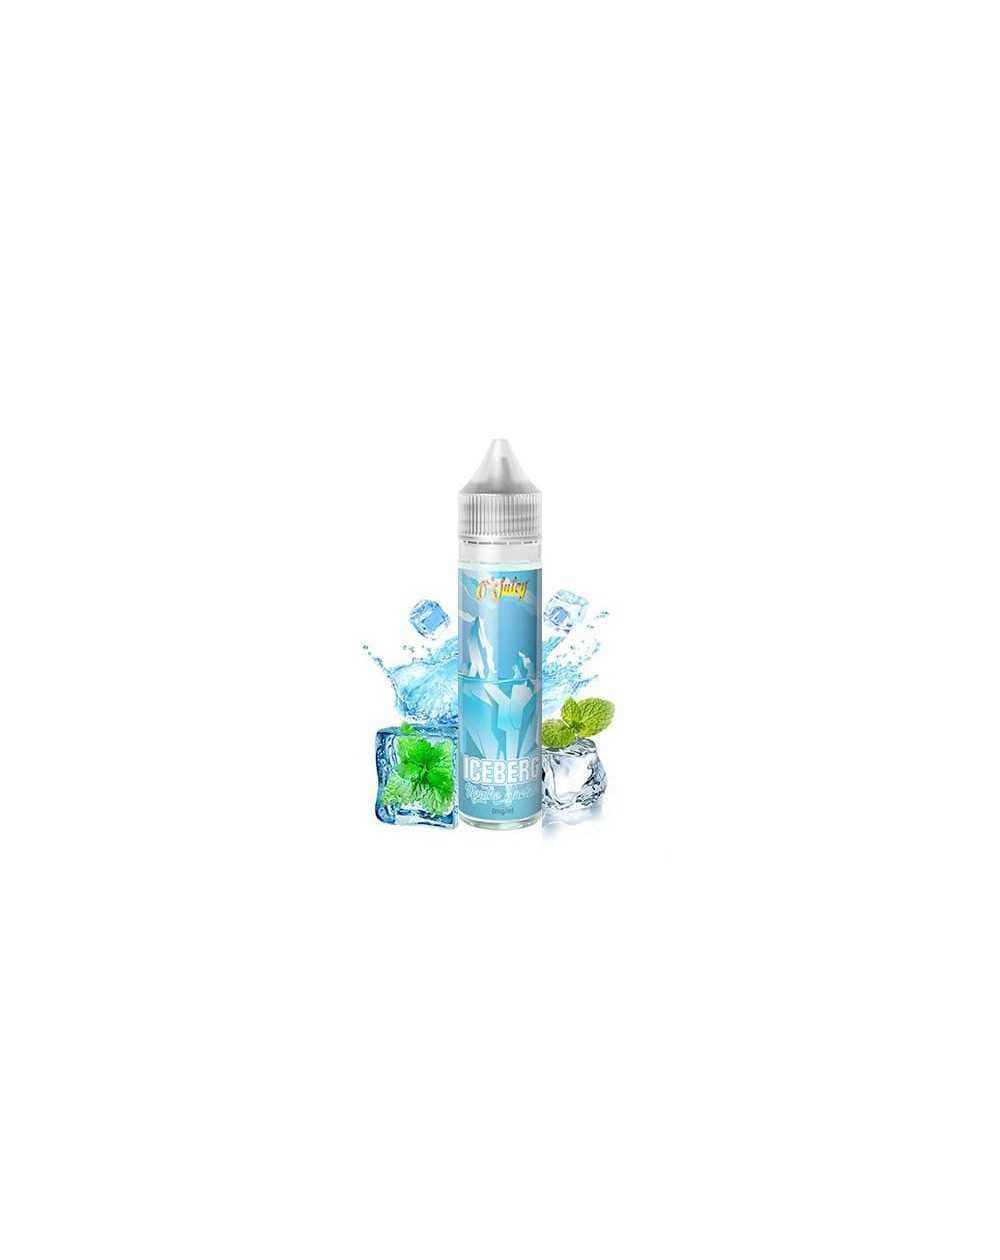 Menthe Glaciale 50ml - Iceberg by O'Juicy-1